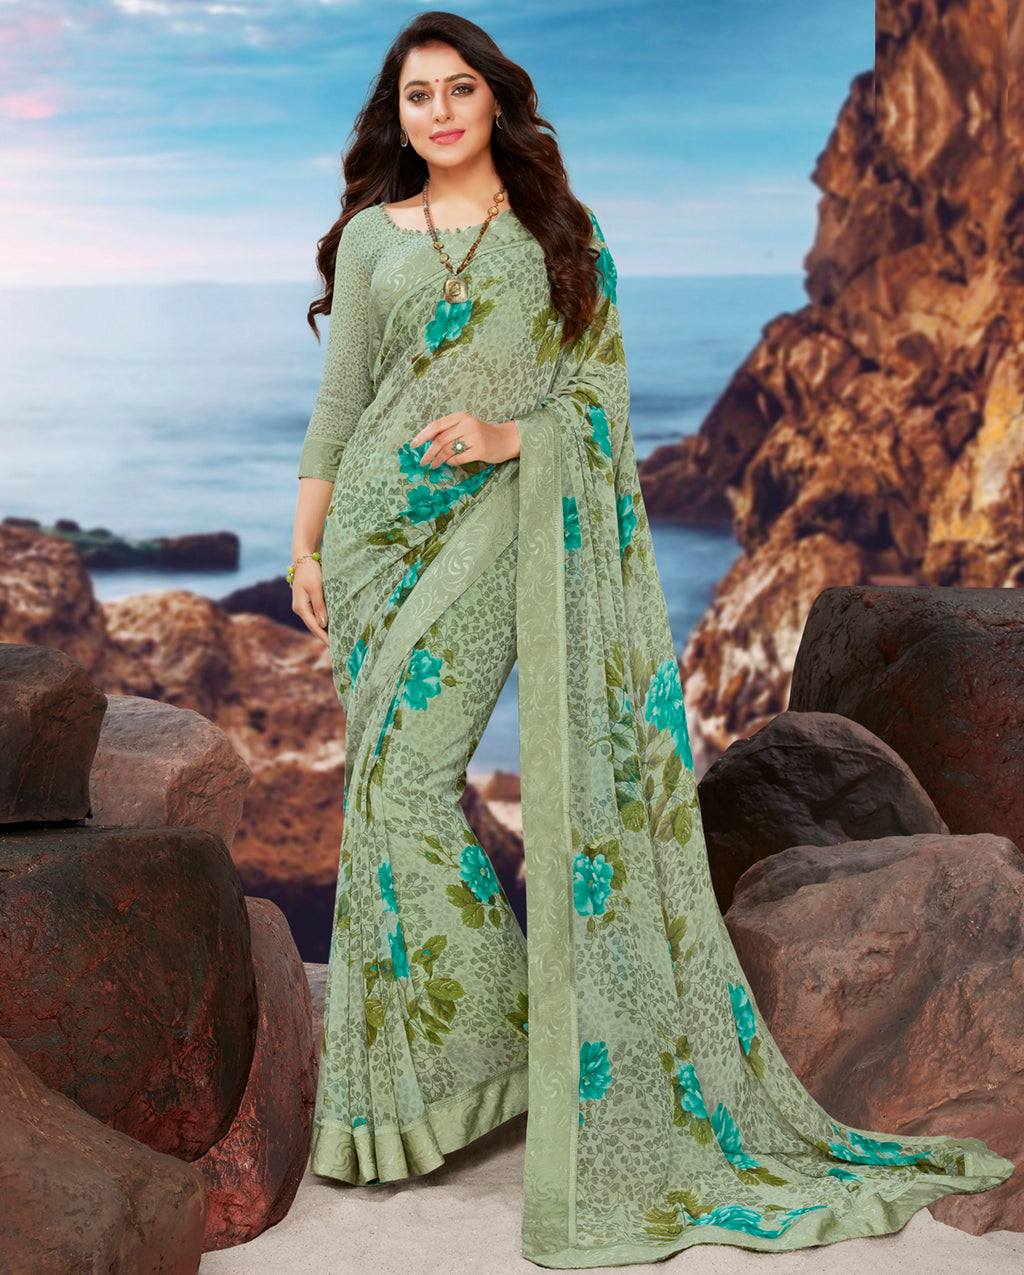 Sea Green Color Georgette Youthful Kitty Party Sarees NYF-4476